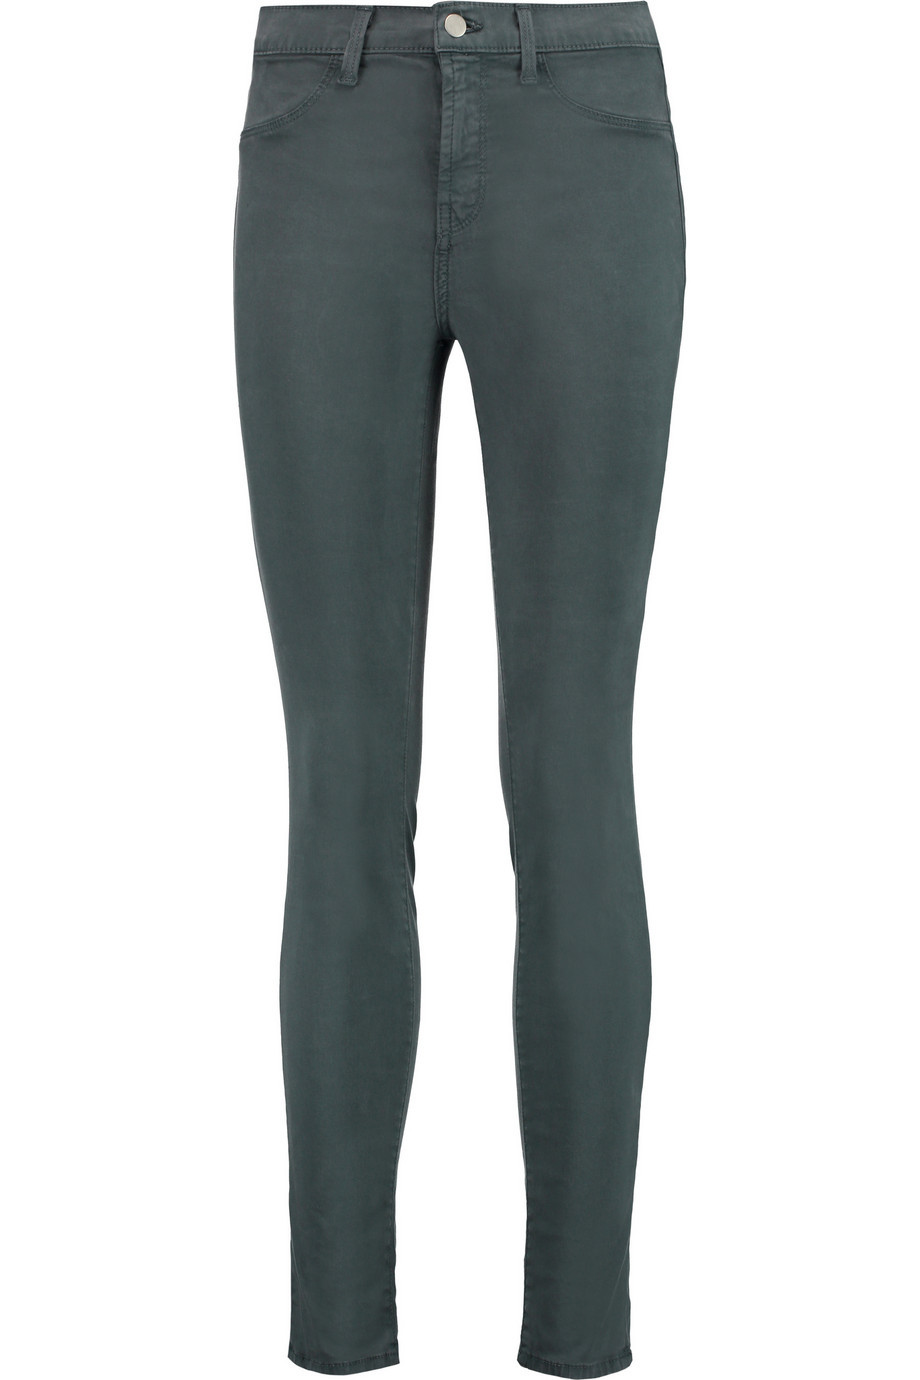 Maria High Rise Skinny Jeans Gray Green - style: skinny leg; length: standard; pattern: plain; waist: high rise; pocket detail: traditional 5 pocket; predominant colour: charcoal; occasions: casual; fibres: cotton - stretch; texture group: denim; pattern type: fabric; season: s/s 2016; wardrobe: highlight